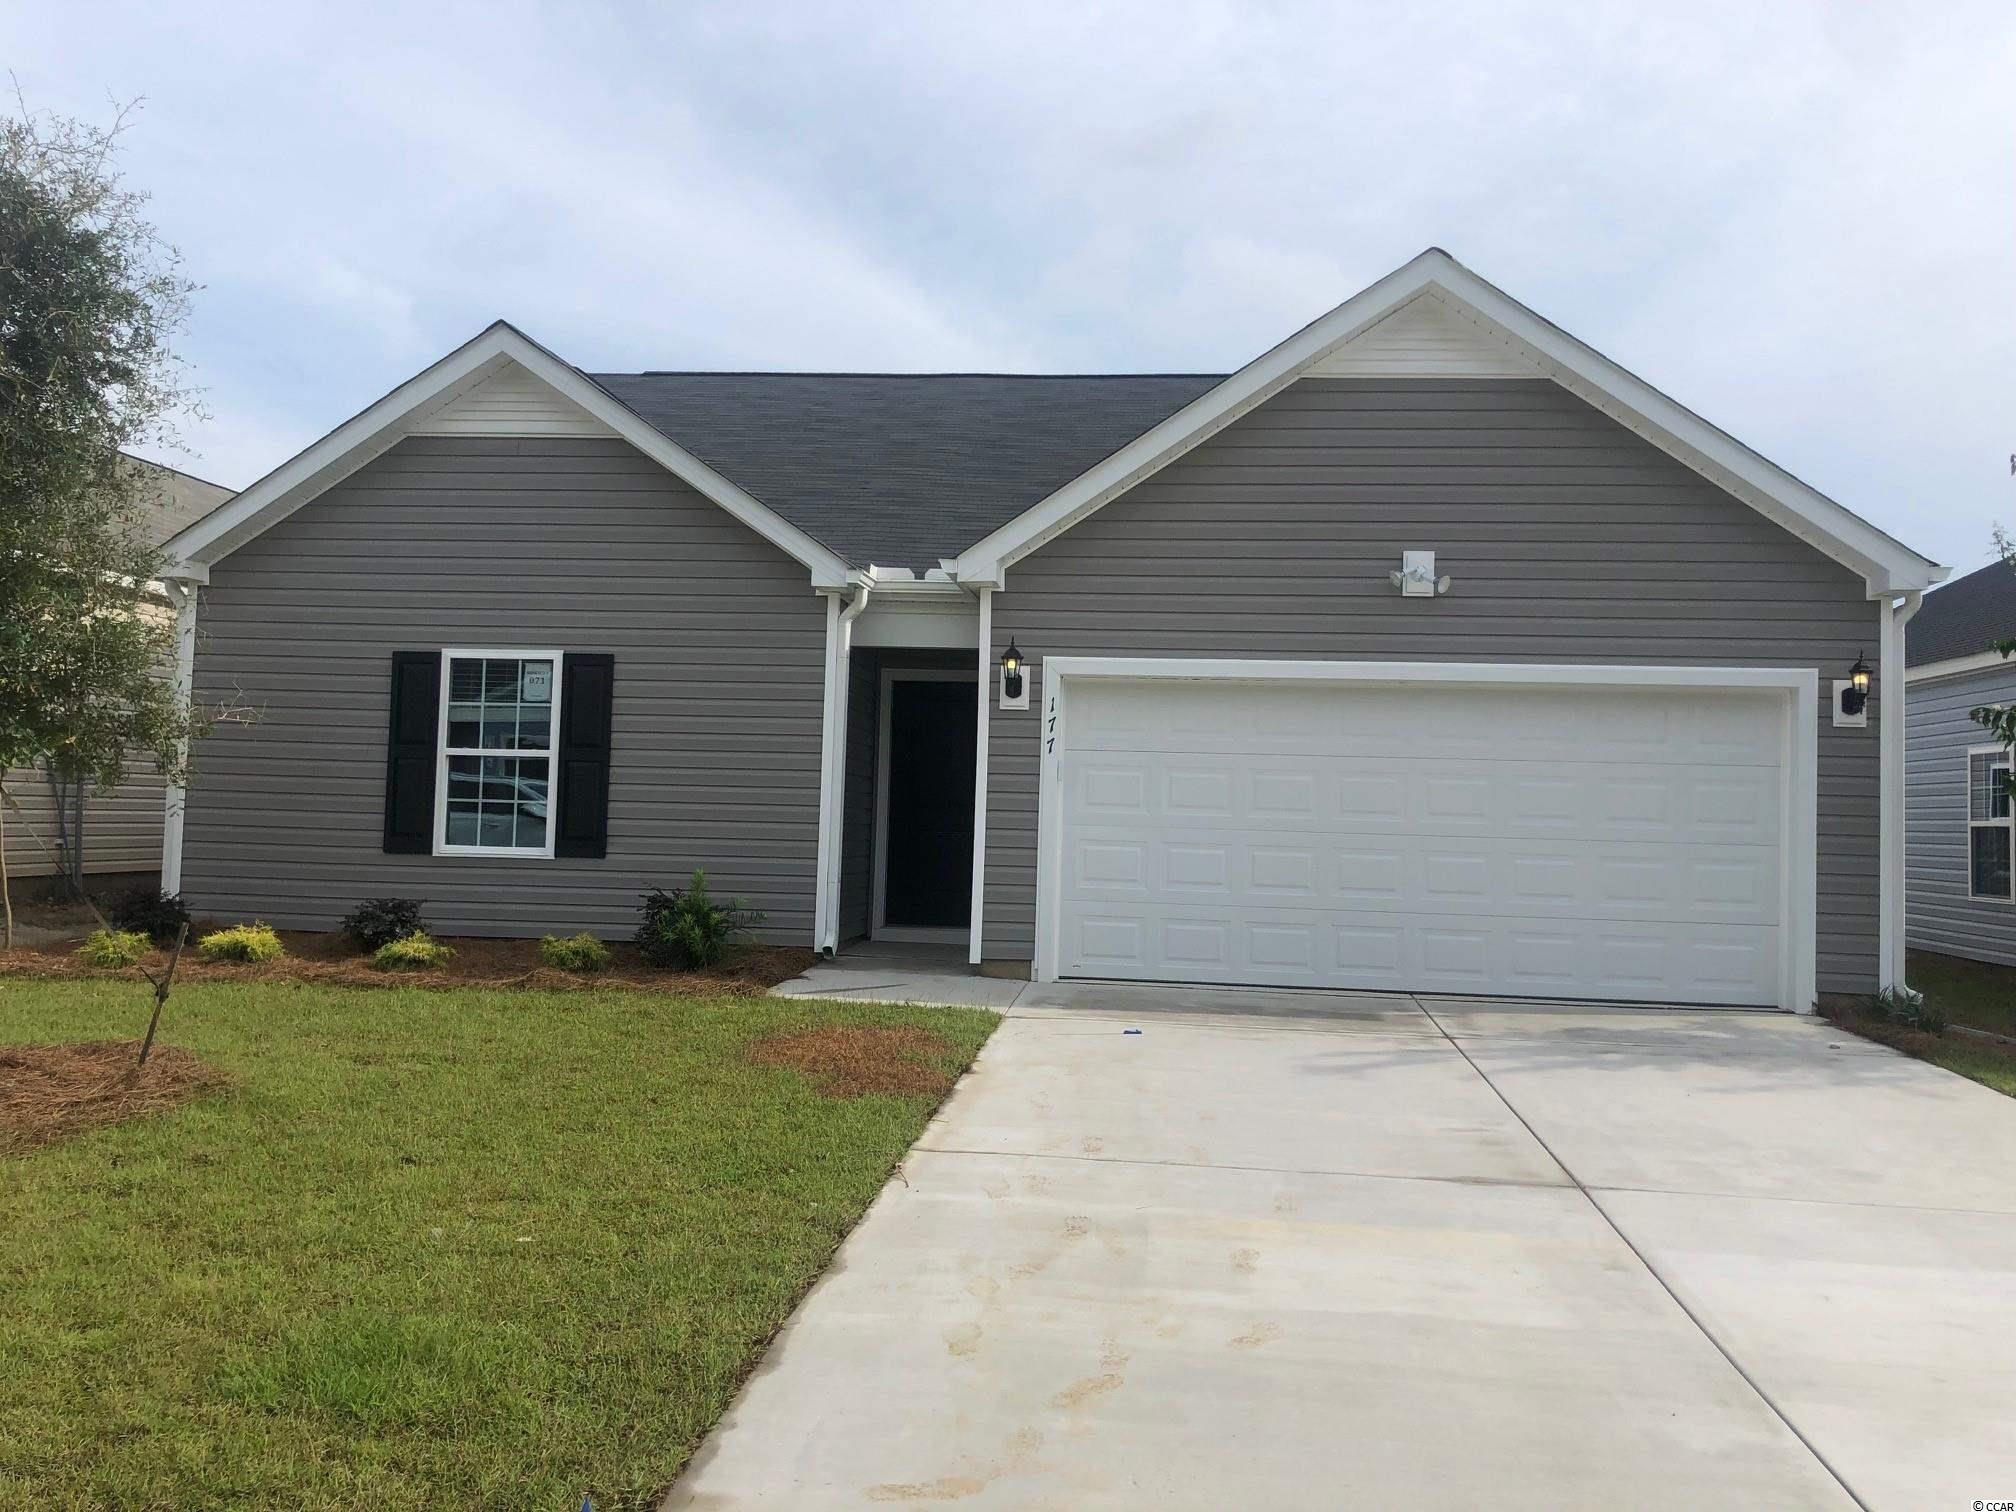 This is a SOLD TBB home.  Stop by Sales Center for details on building a similar home.   Hampton Park is a natural Gas Community located on 707 near 544. Easy access to 31, fantastic location! We are located minutes from beaches, shopping, golf, restaurants, medical facilities and more. This is a small 80 home community that will feature lots that view the pond, as well as backyards that have wooded views; a pool and sidewalks. *Photos are of model home and do not reflect color selections and options of actual unit for sale.*